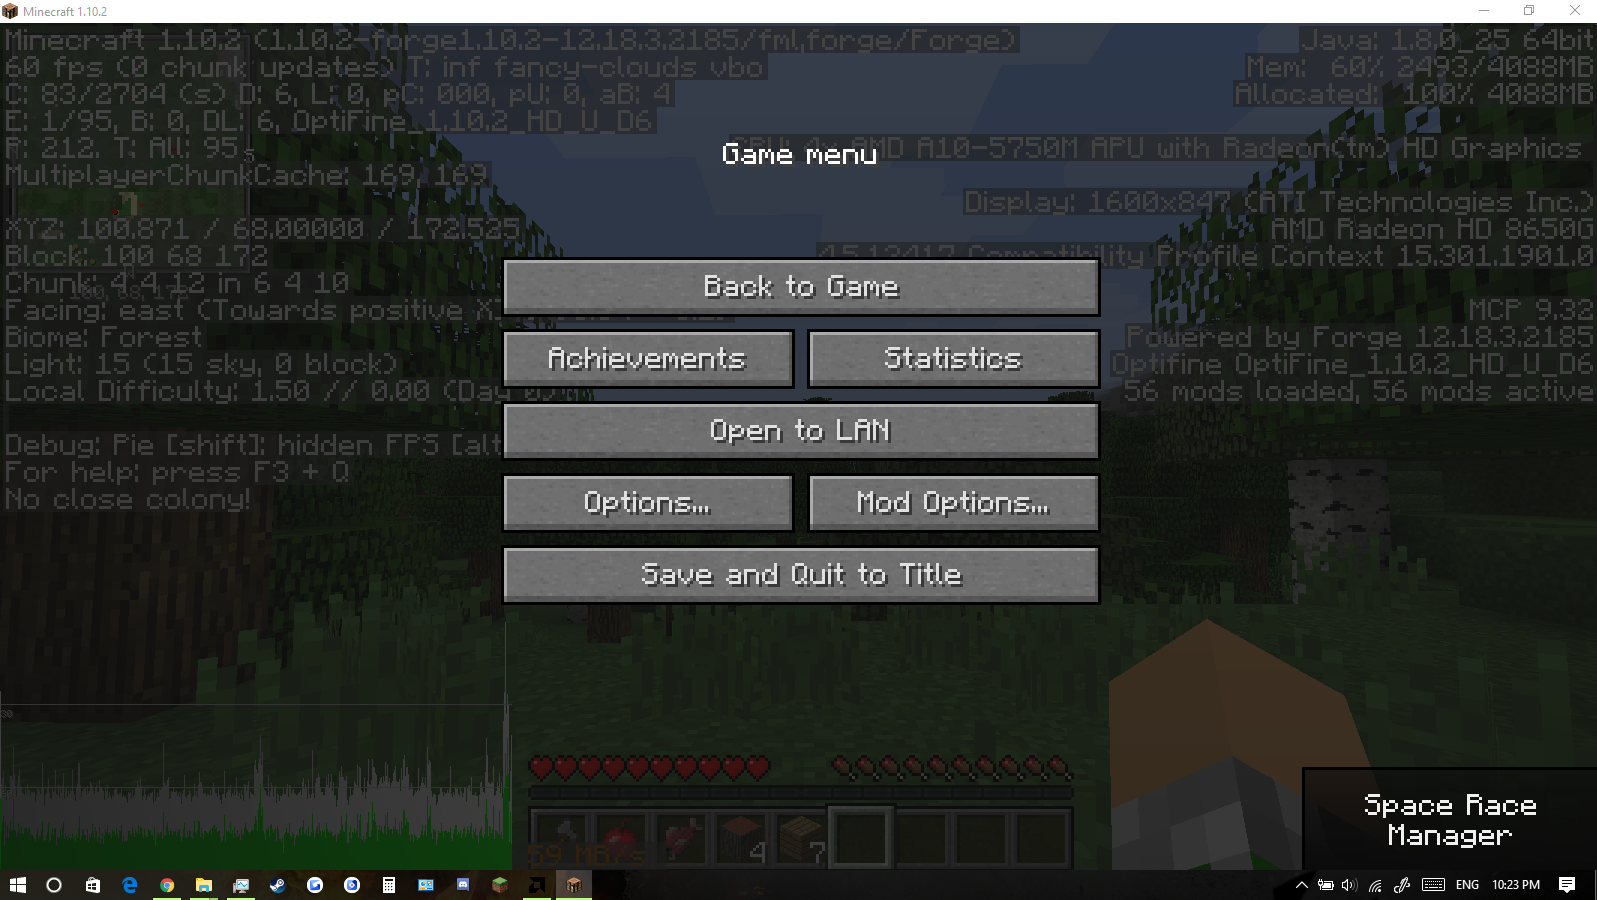 Details on how to remove lags in Minecraft